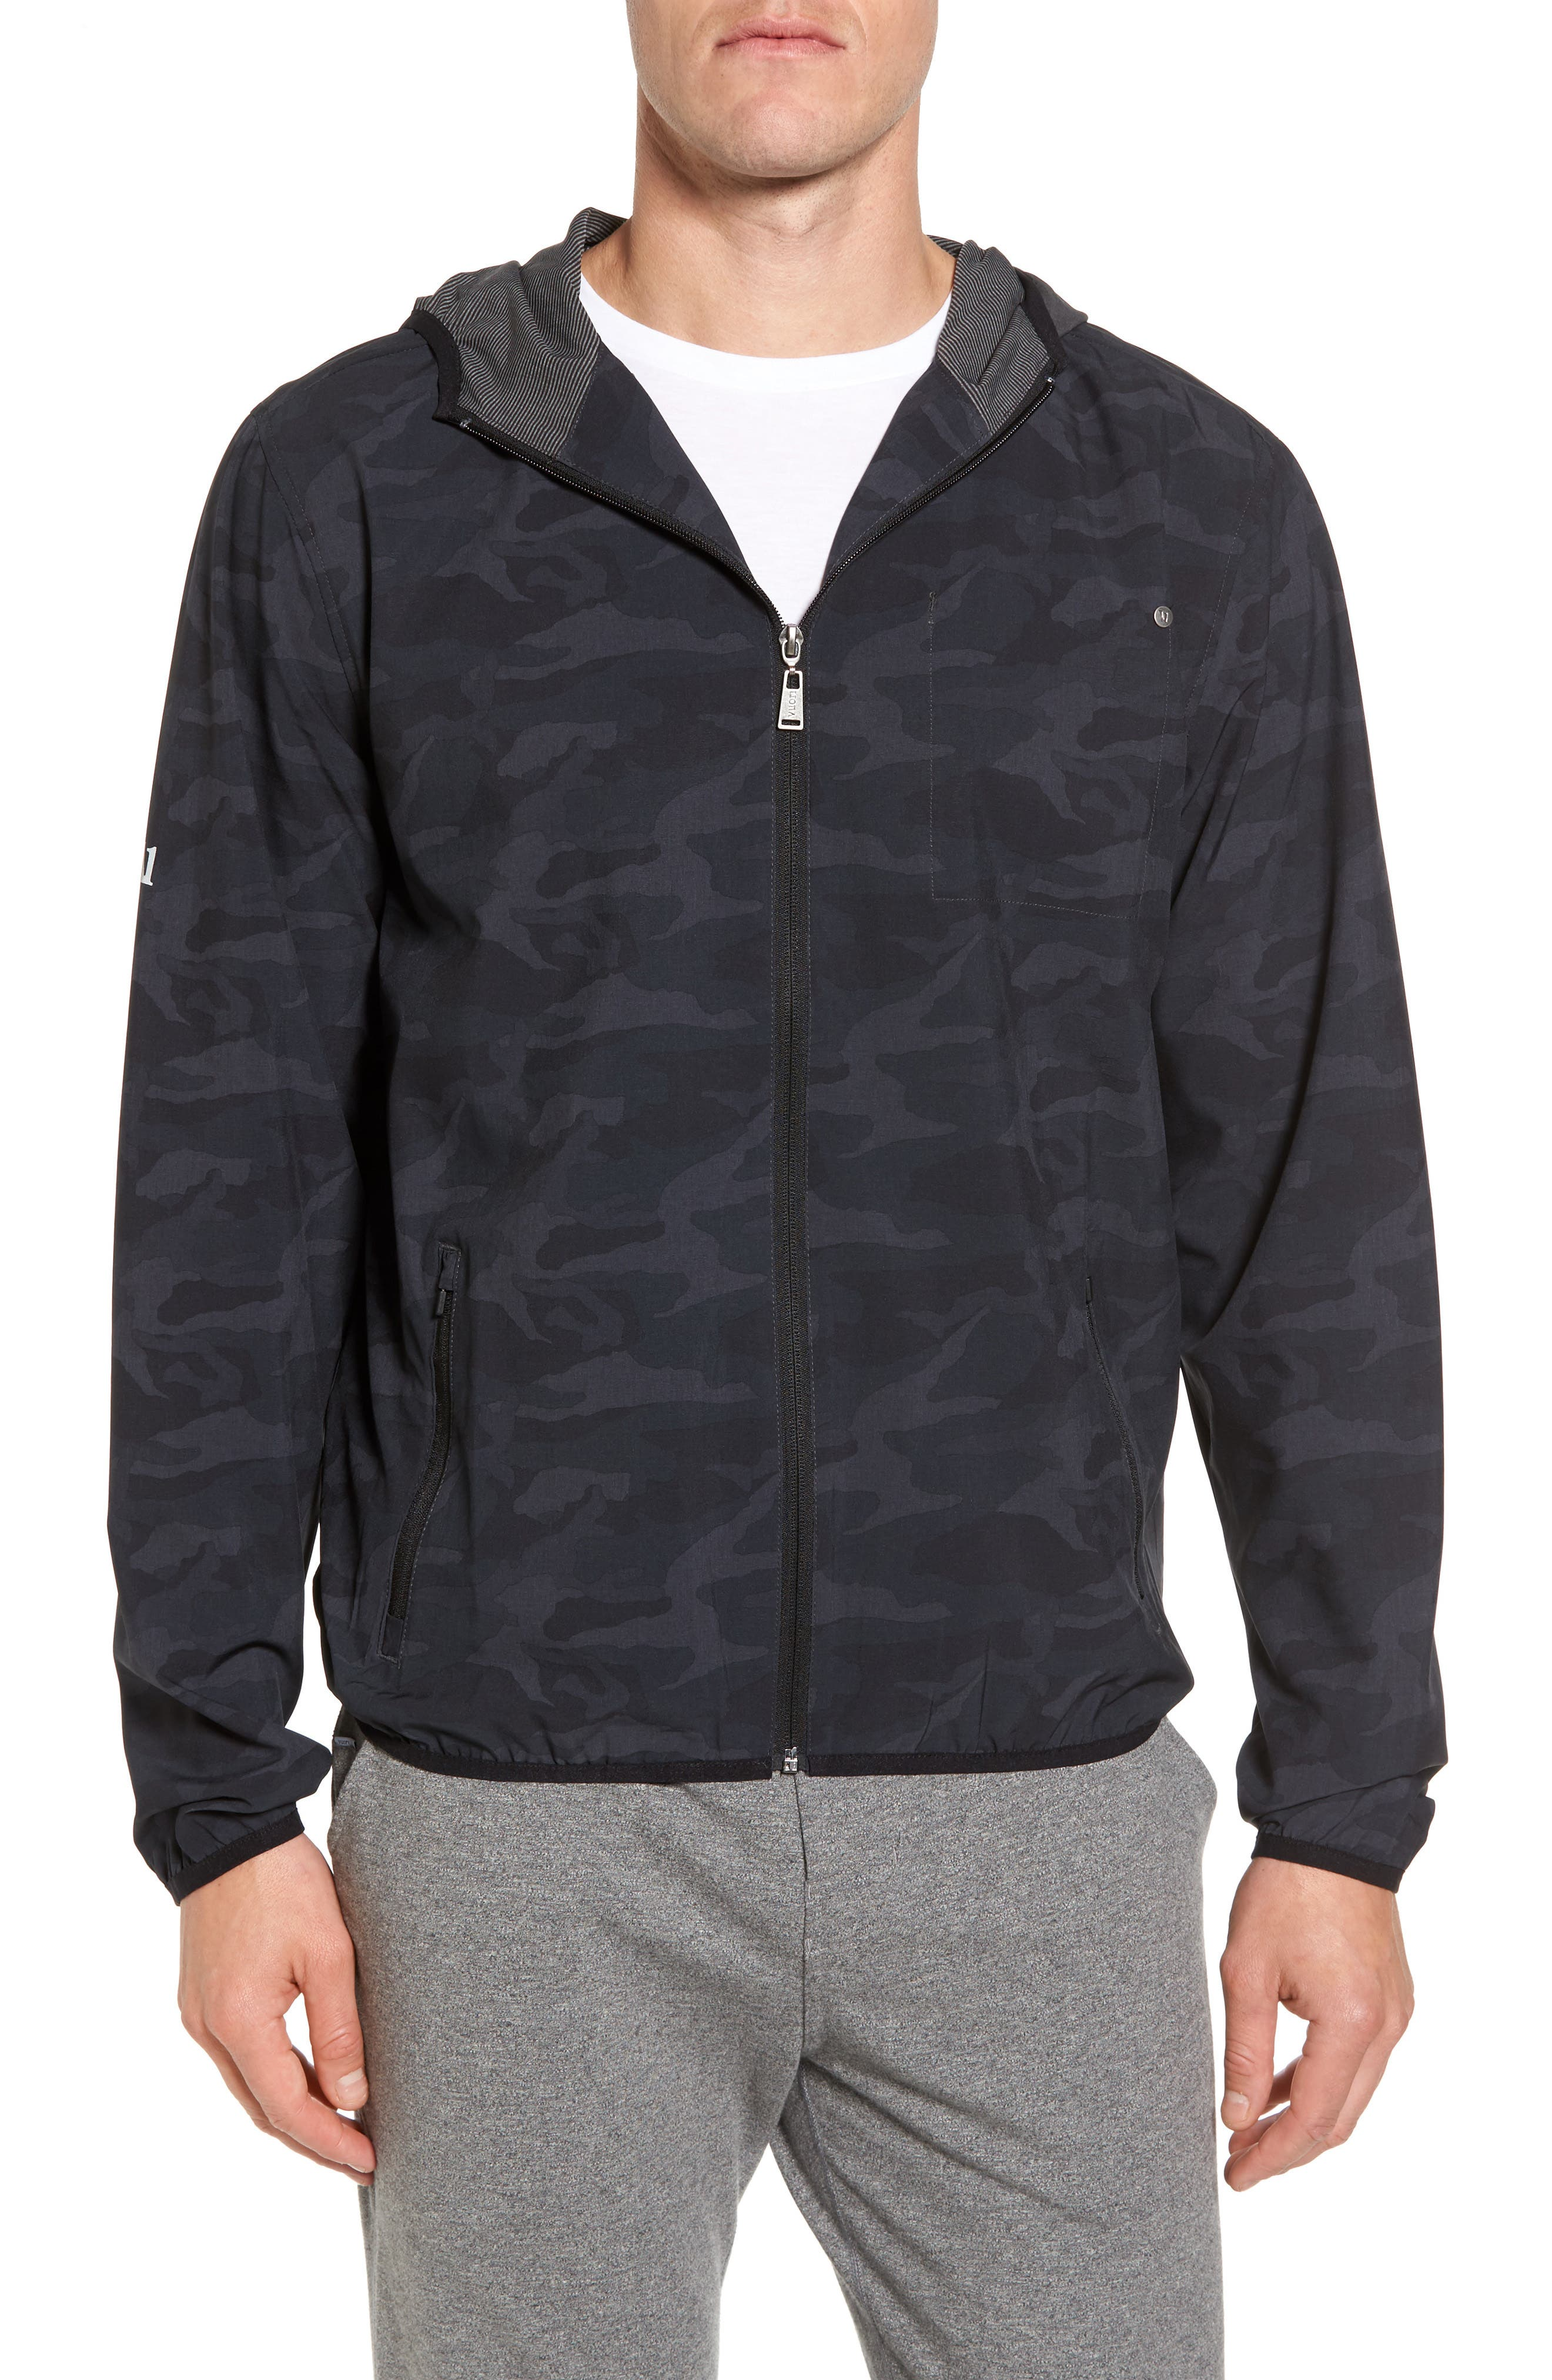 Outdoor Training Shell Jacket,                         Main,                         color, 021